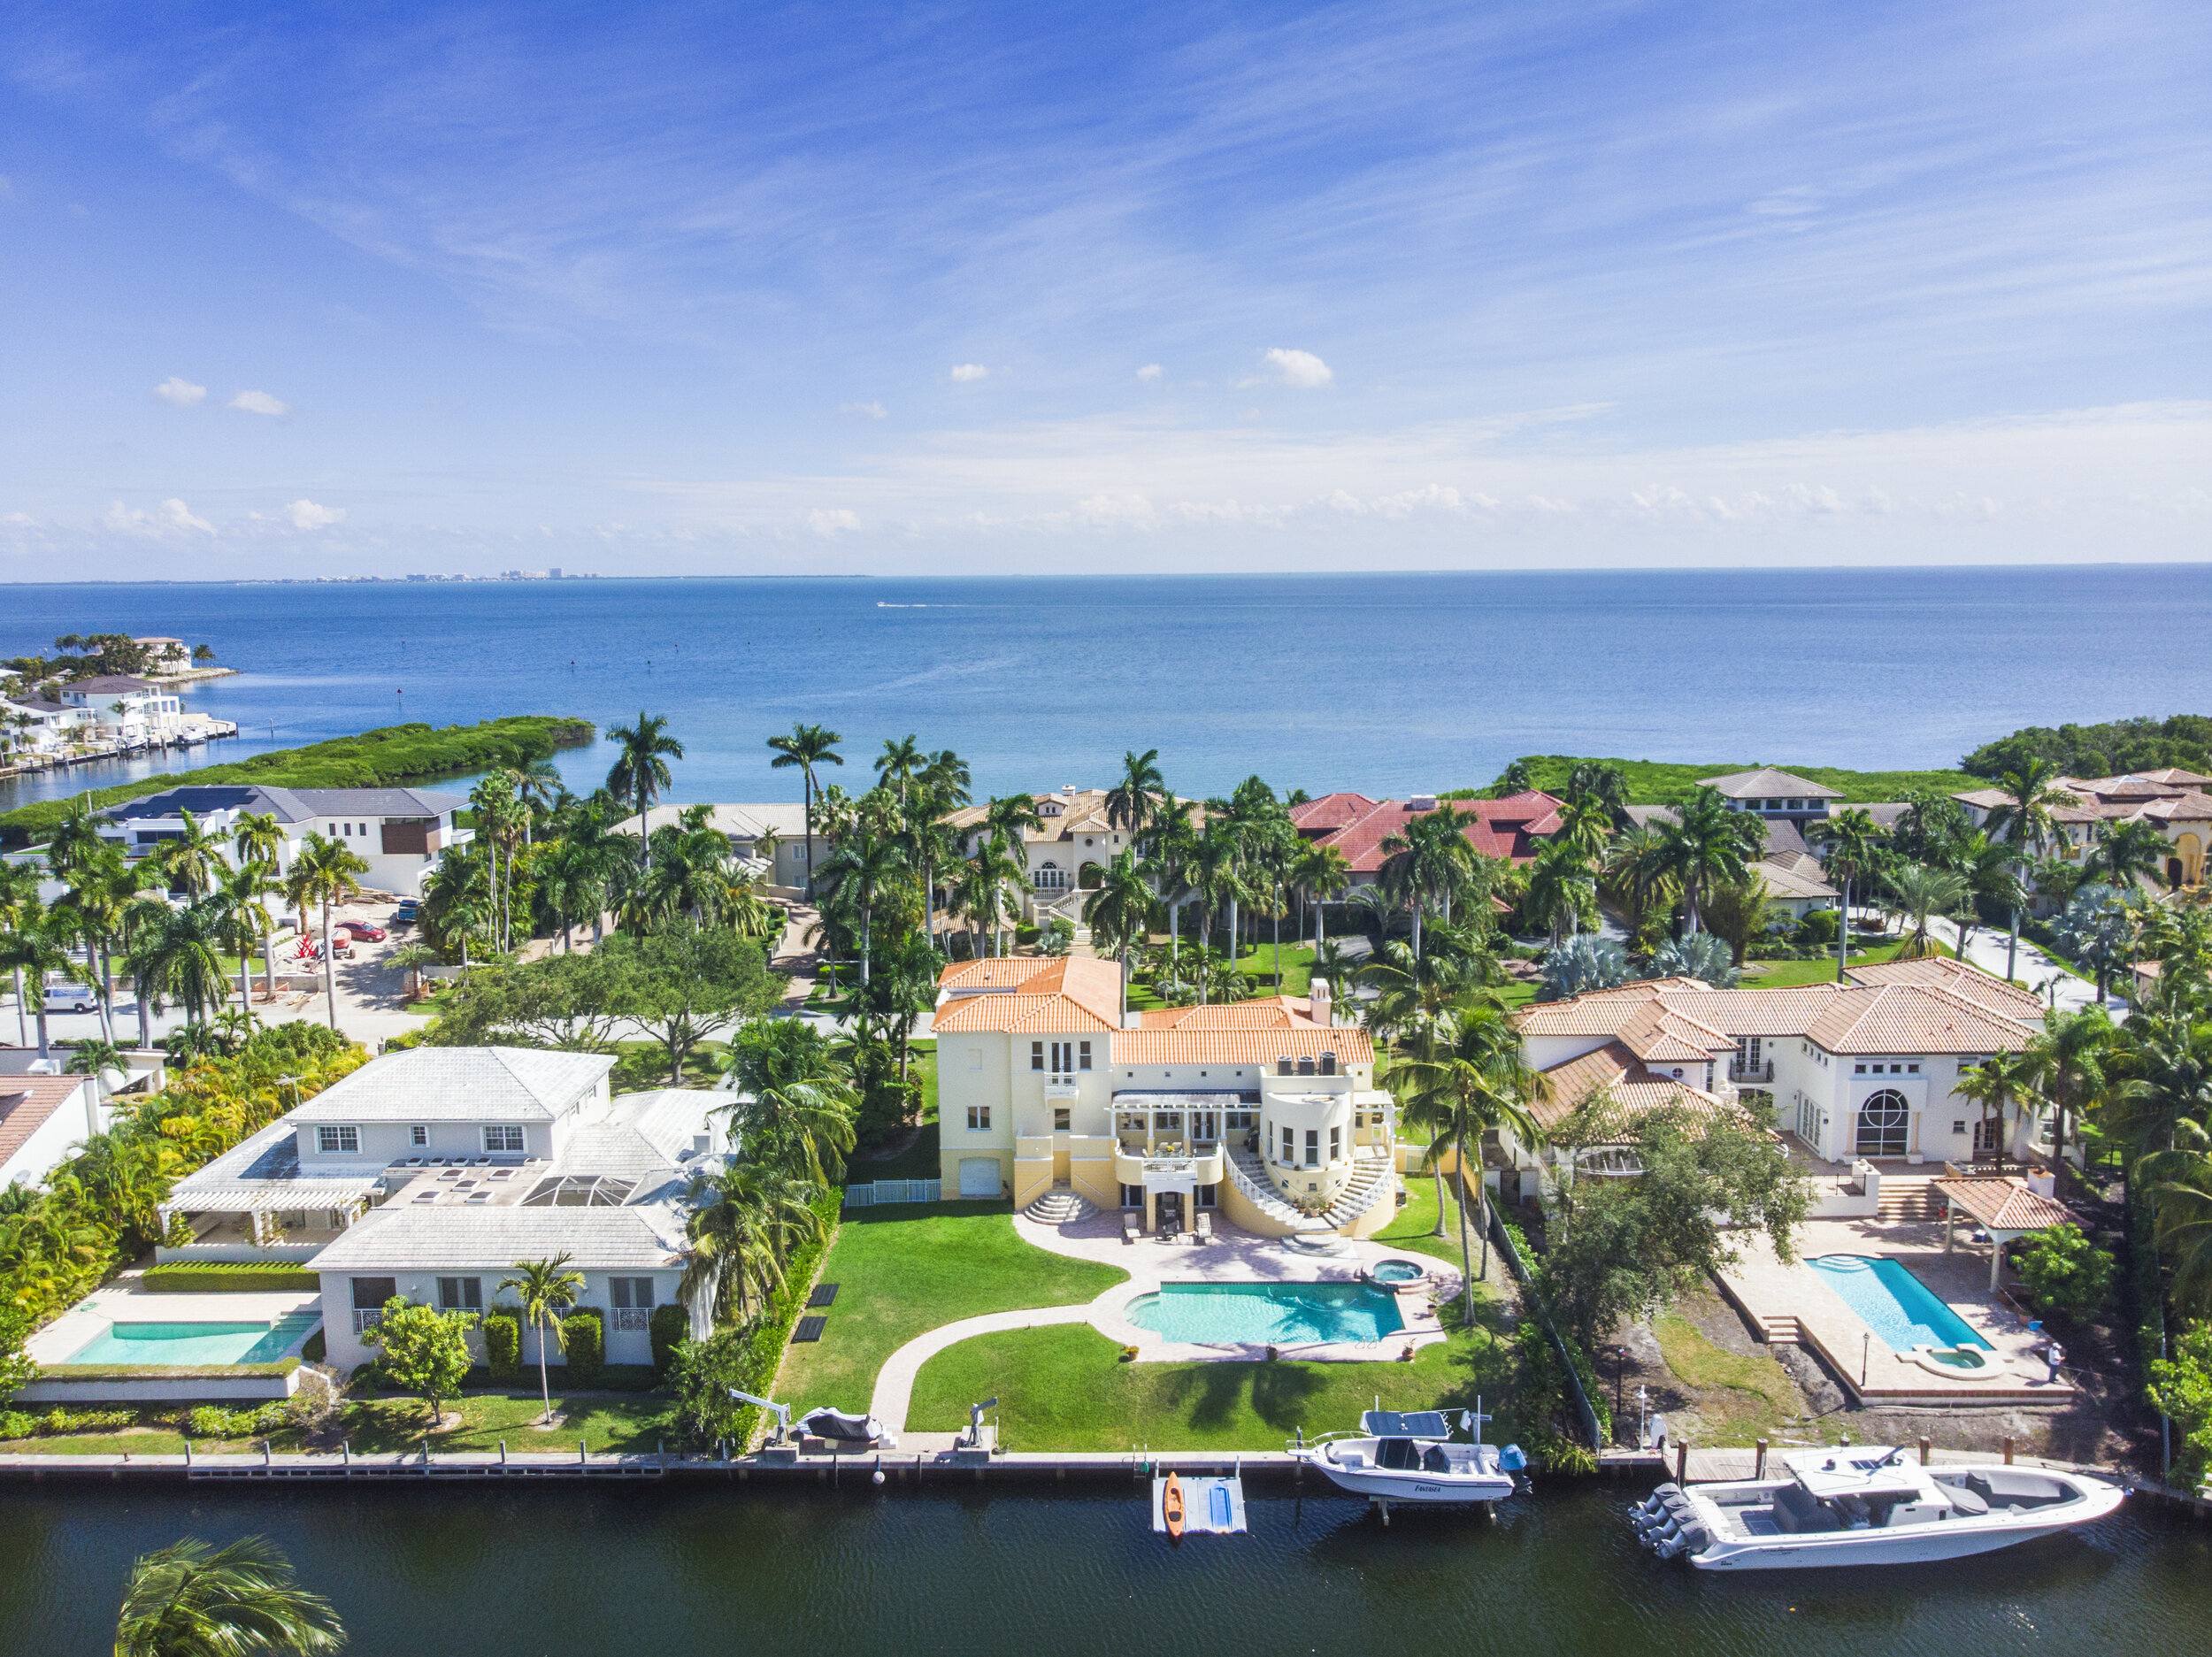 13040 Mar Street - On prestigious Mar Street in gated Gables by the Sea you will find this contemporary masterpiece with 110' of seawall and no bridges to Biscayne Bay. Davits, boat lift and floating dock are a boater's dream come true. The large eat-in kitchen provides beautiful views to the pool and wide canal. Sit on the back patio and enjoy Miami's beautiful sunsets. The spectacular, private master suite on the 3rd level includes generous his and her walk-in closets, sitting area and luxurious master bathroom. On the ground level, you will find 2 garages and a completely enclosed basement. This is a very special home which will allow you to enjoy all that Miami coastal living has to offer.bea.citron@compass.com305.606.7993